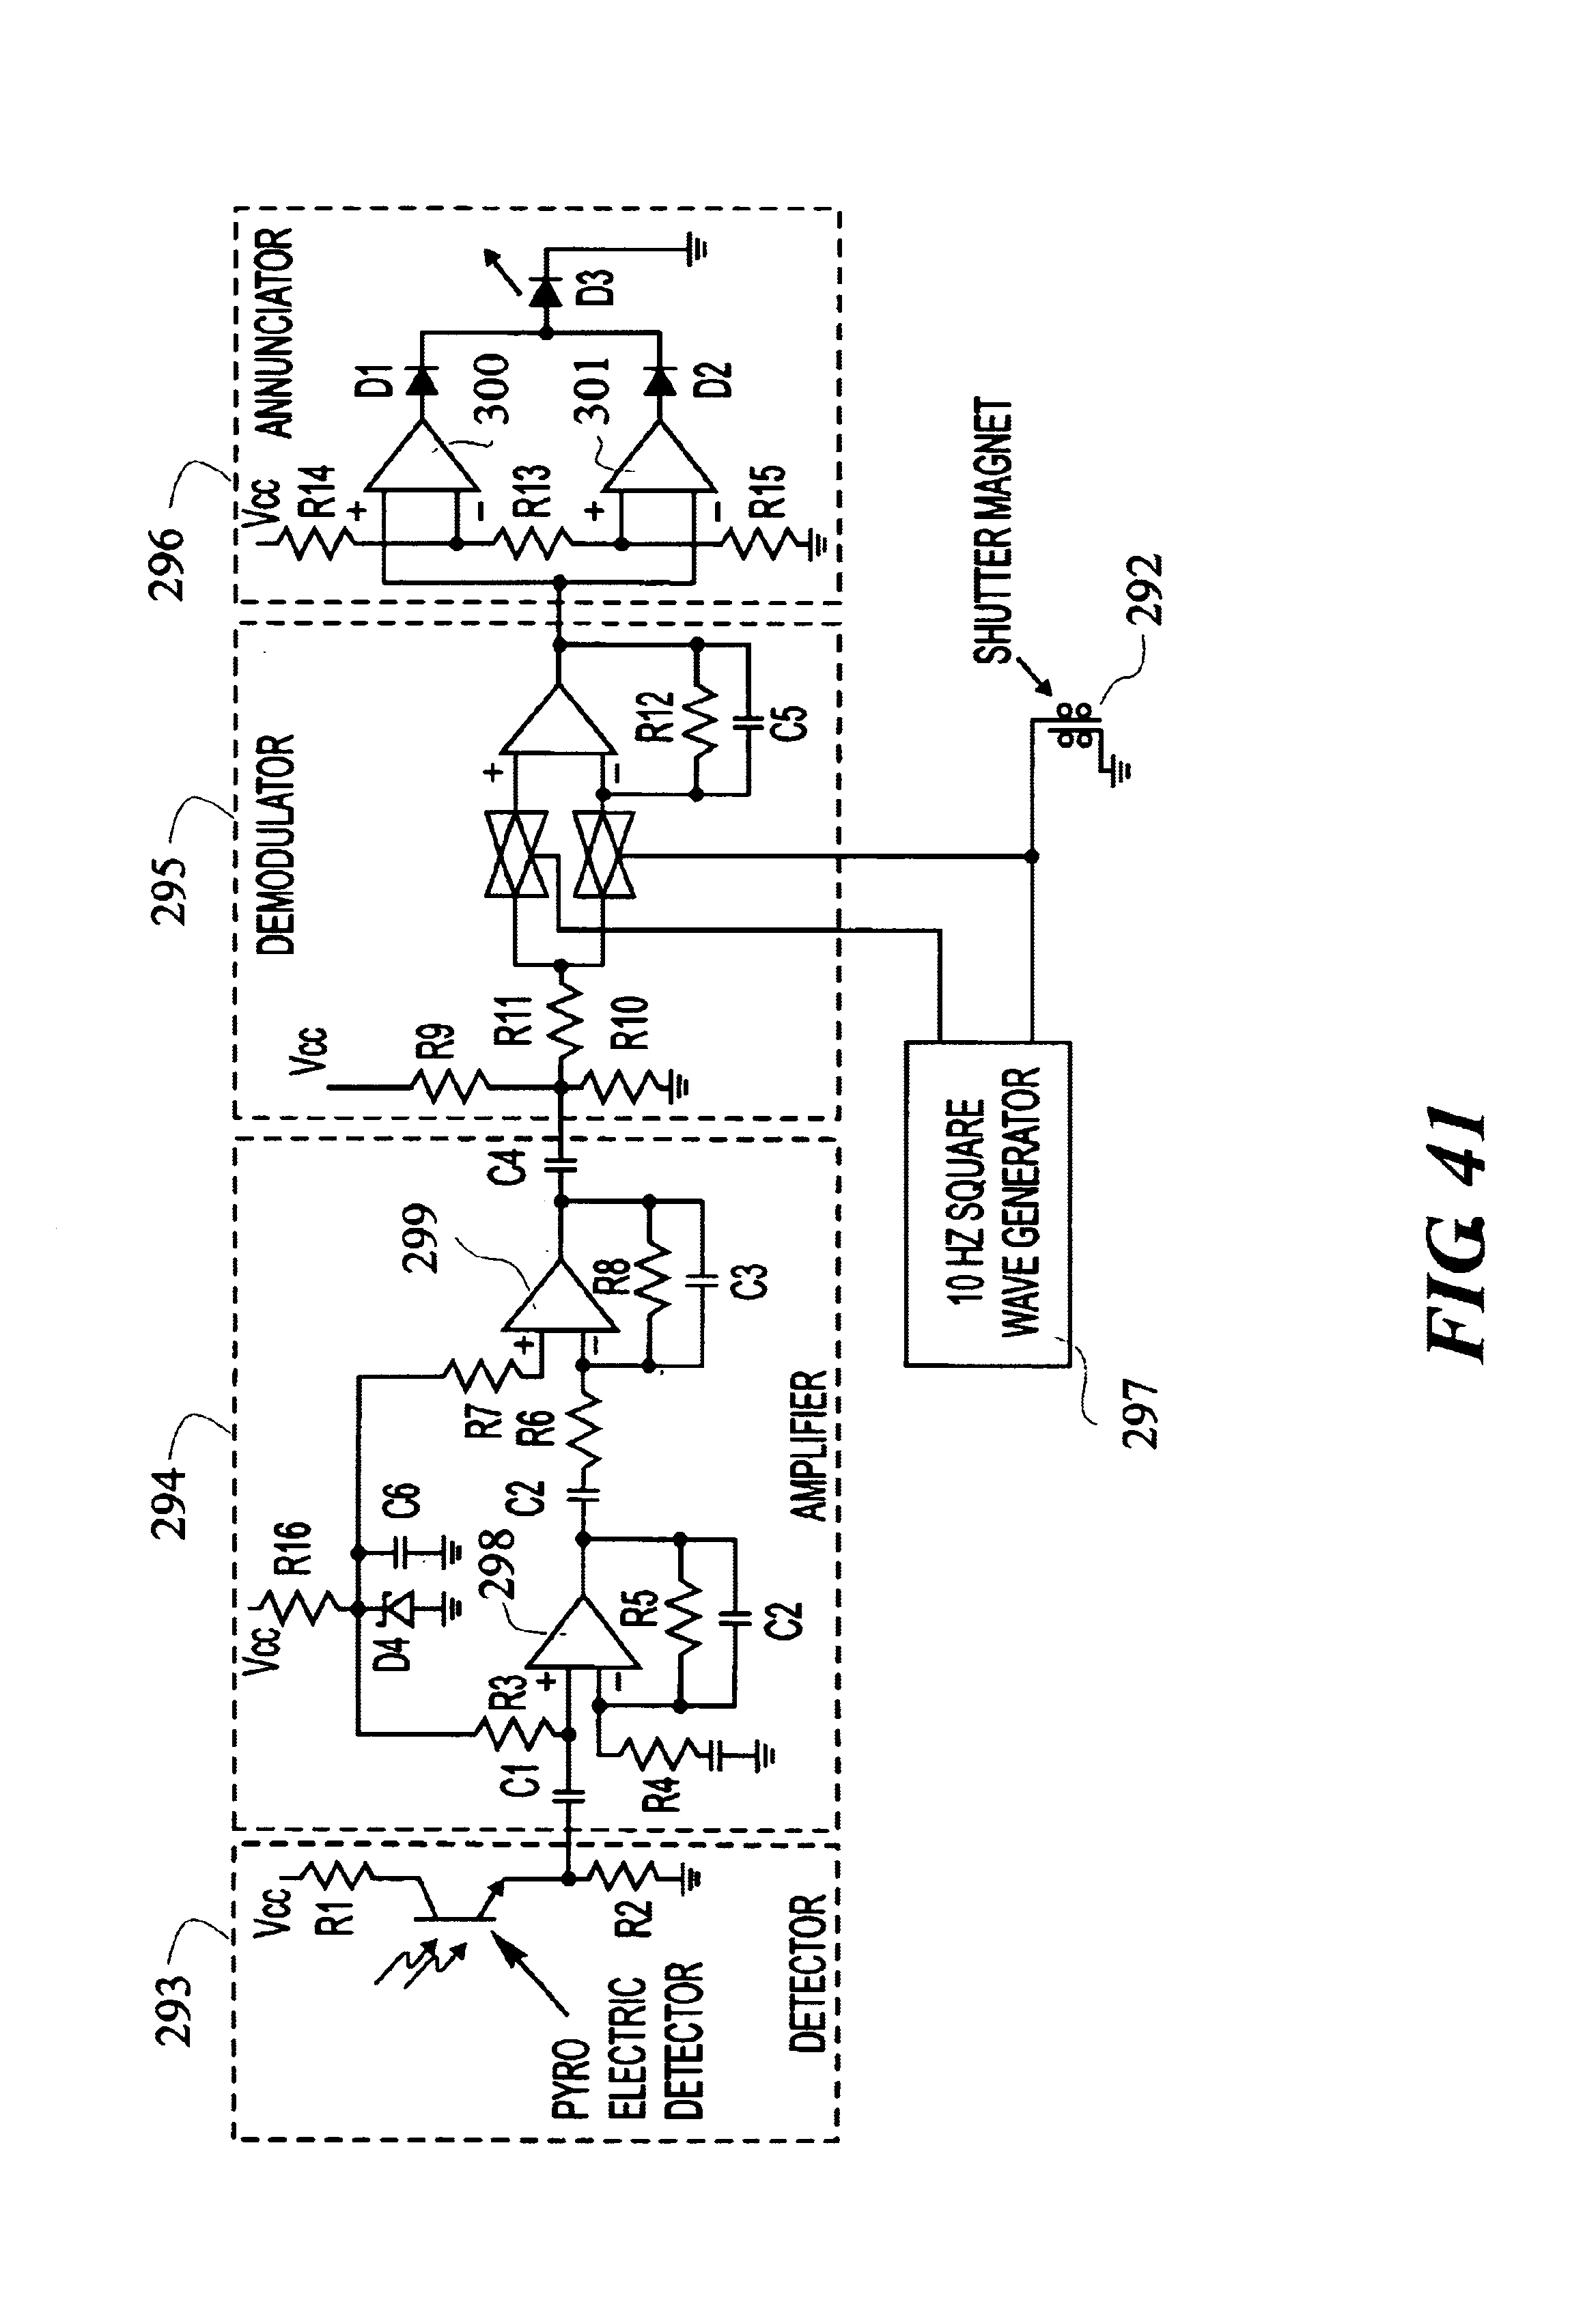 Patent Us 6988026 B2 Tube Rectifier Schematic In Addition Analog Pid Controller Circuit Images